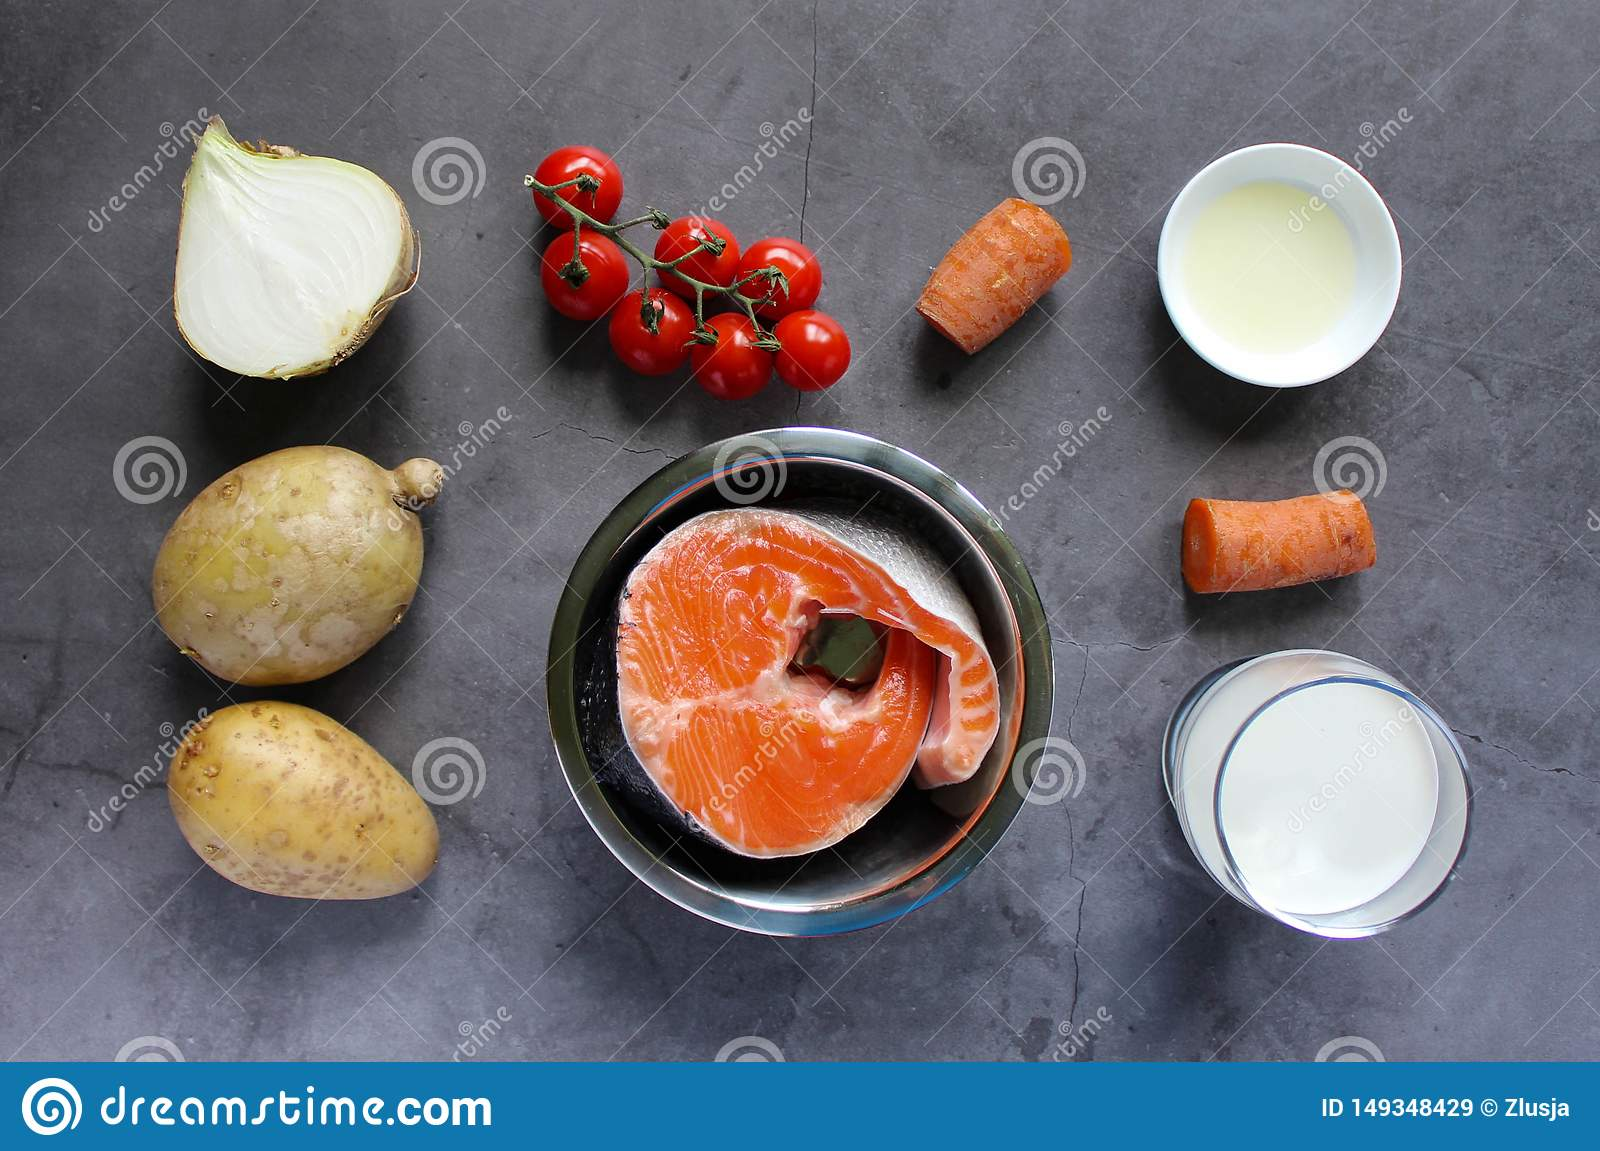 Ingredients for fish soup: salmon, onion, carrot, potato, cherry tomatoes, cream, olive oil